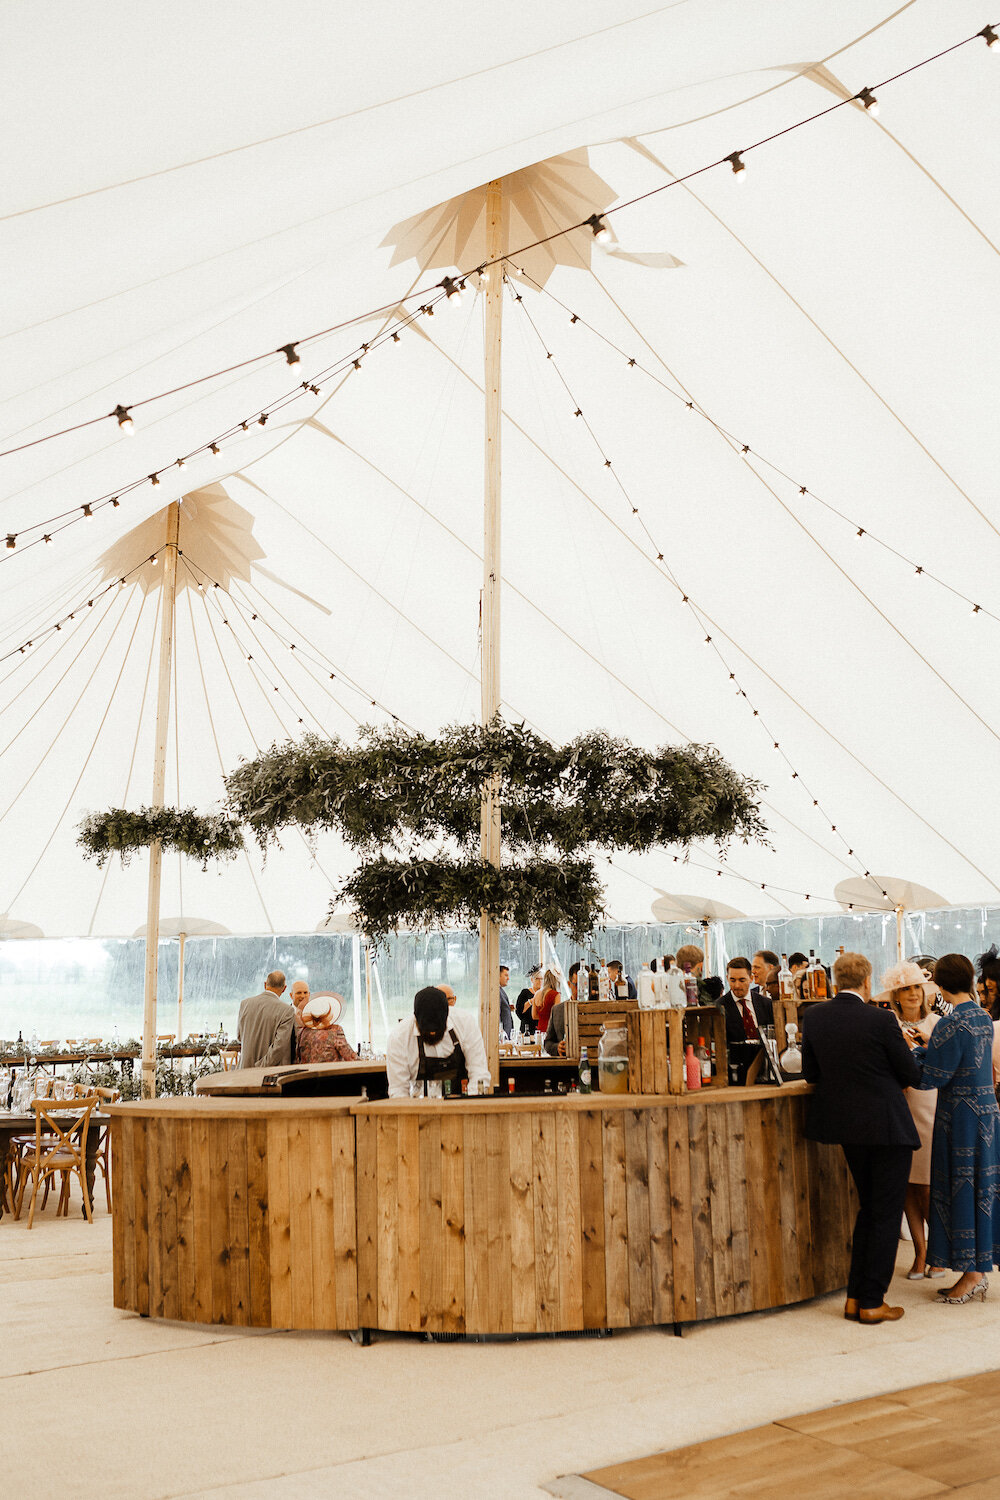 21_India-Sean-PapaKåta-Sperry-Tent-Wedding-Caitlin-Jones-Photography-Oak-Circular-Bar.jpg